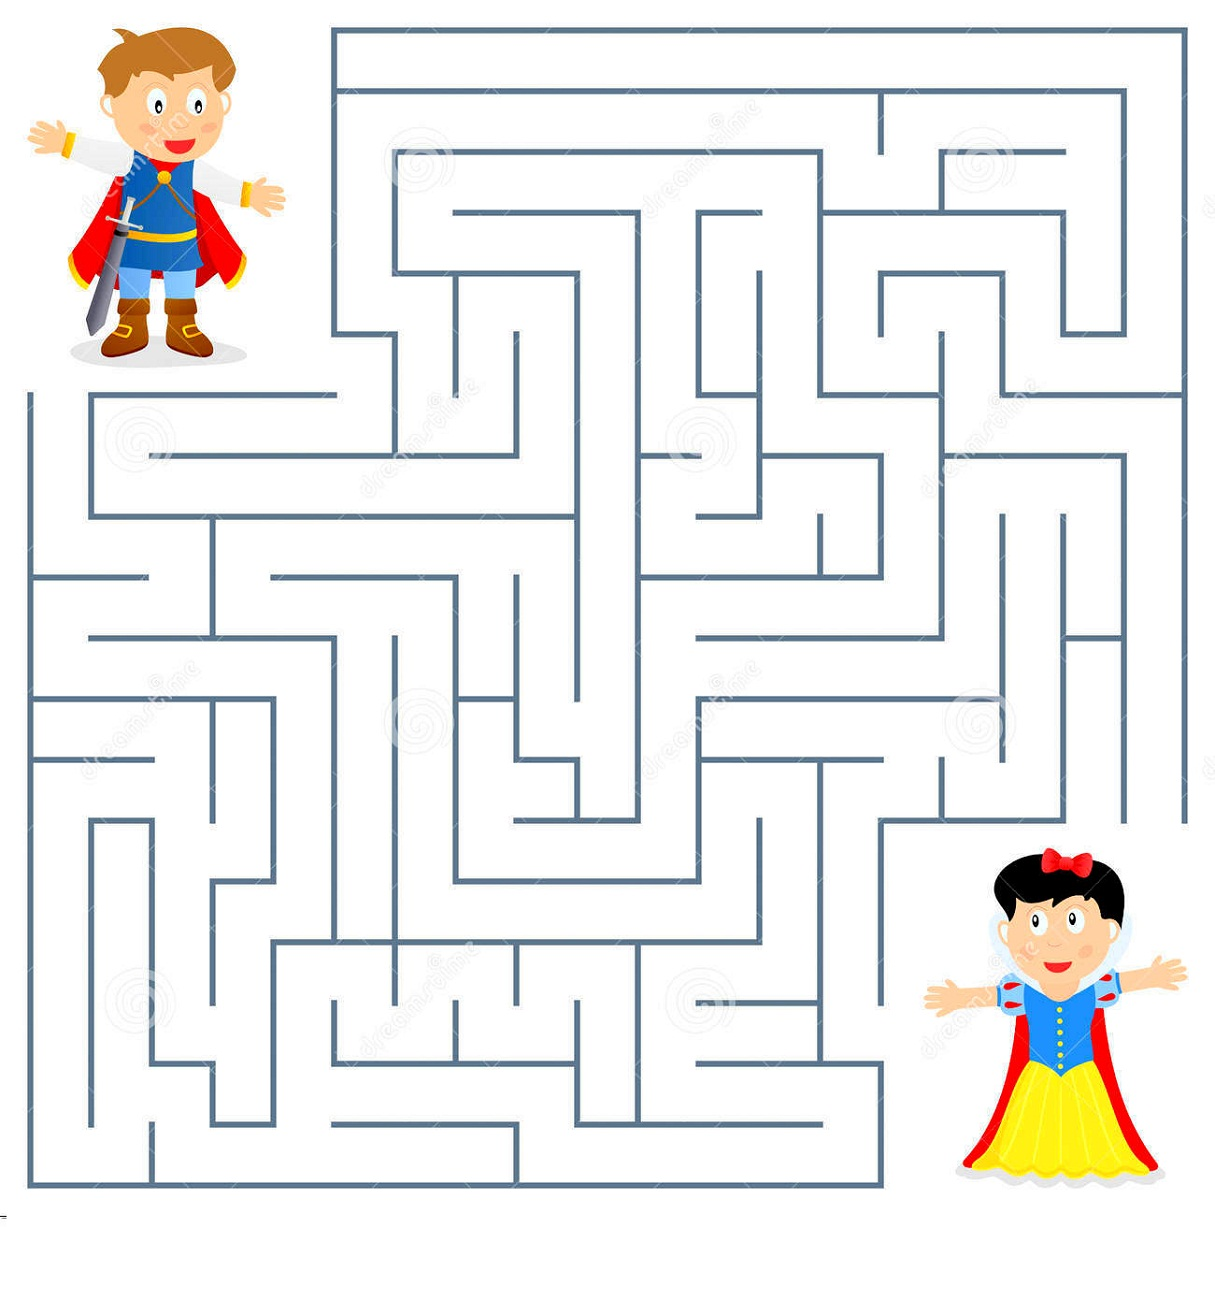 fun-mazes-for-kids-princess